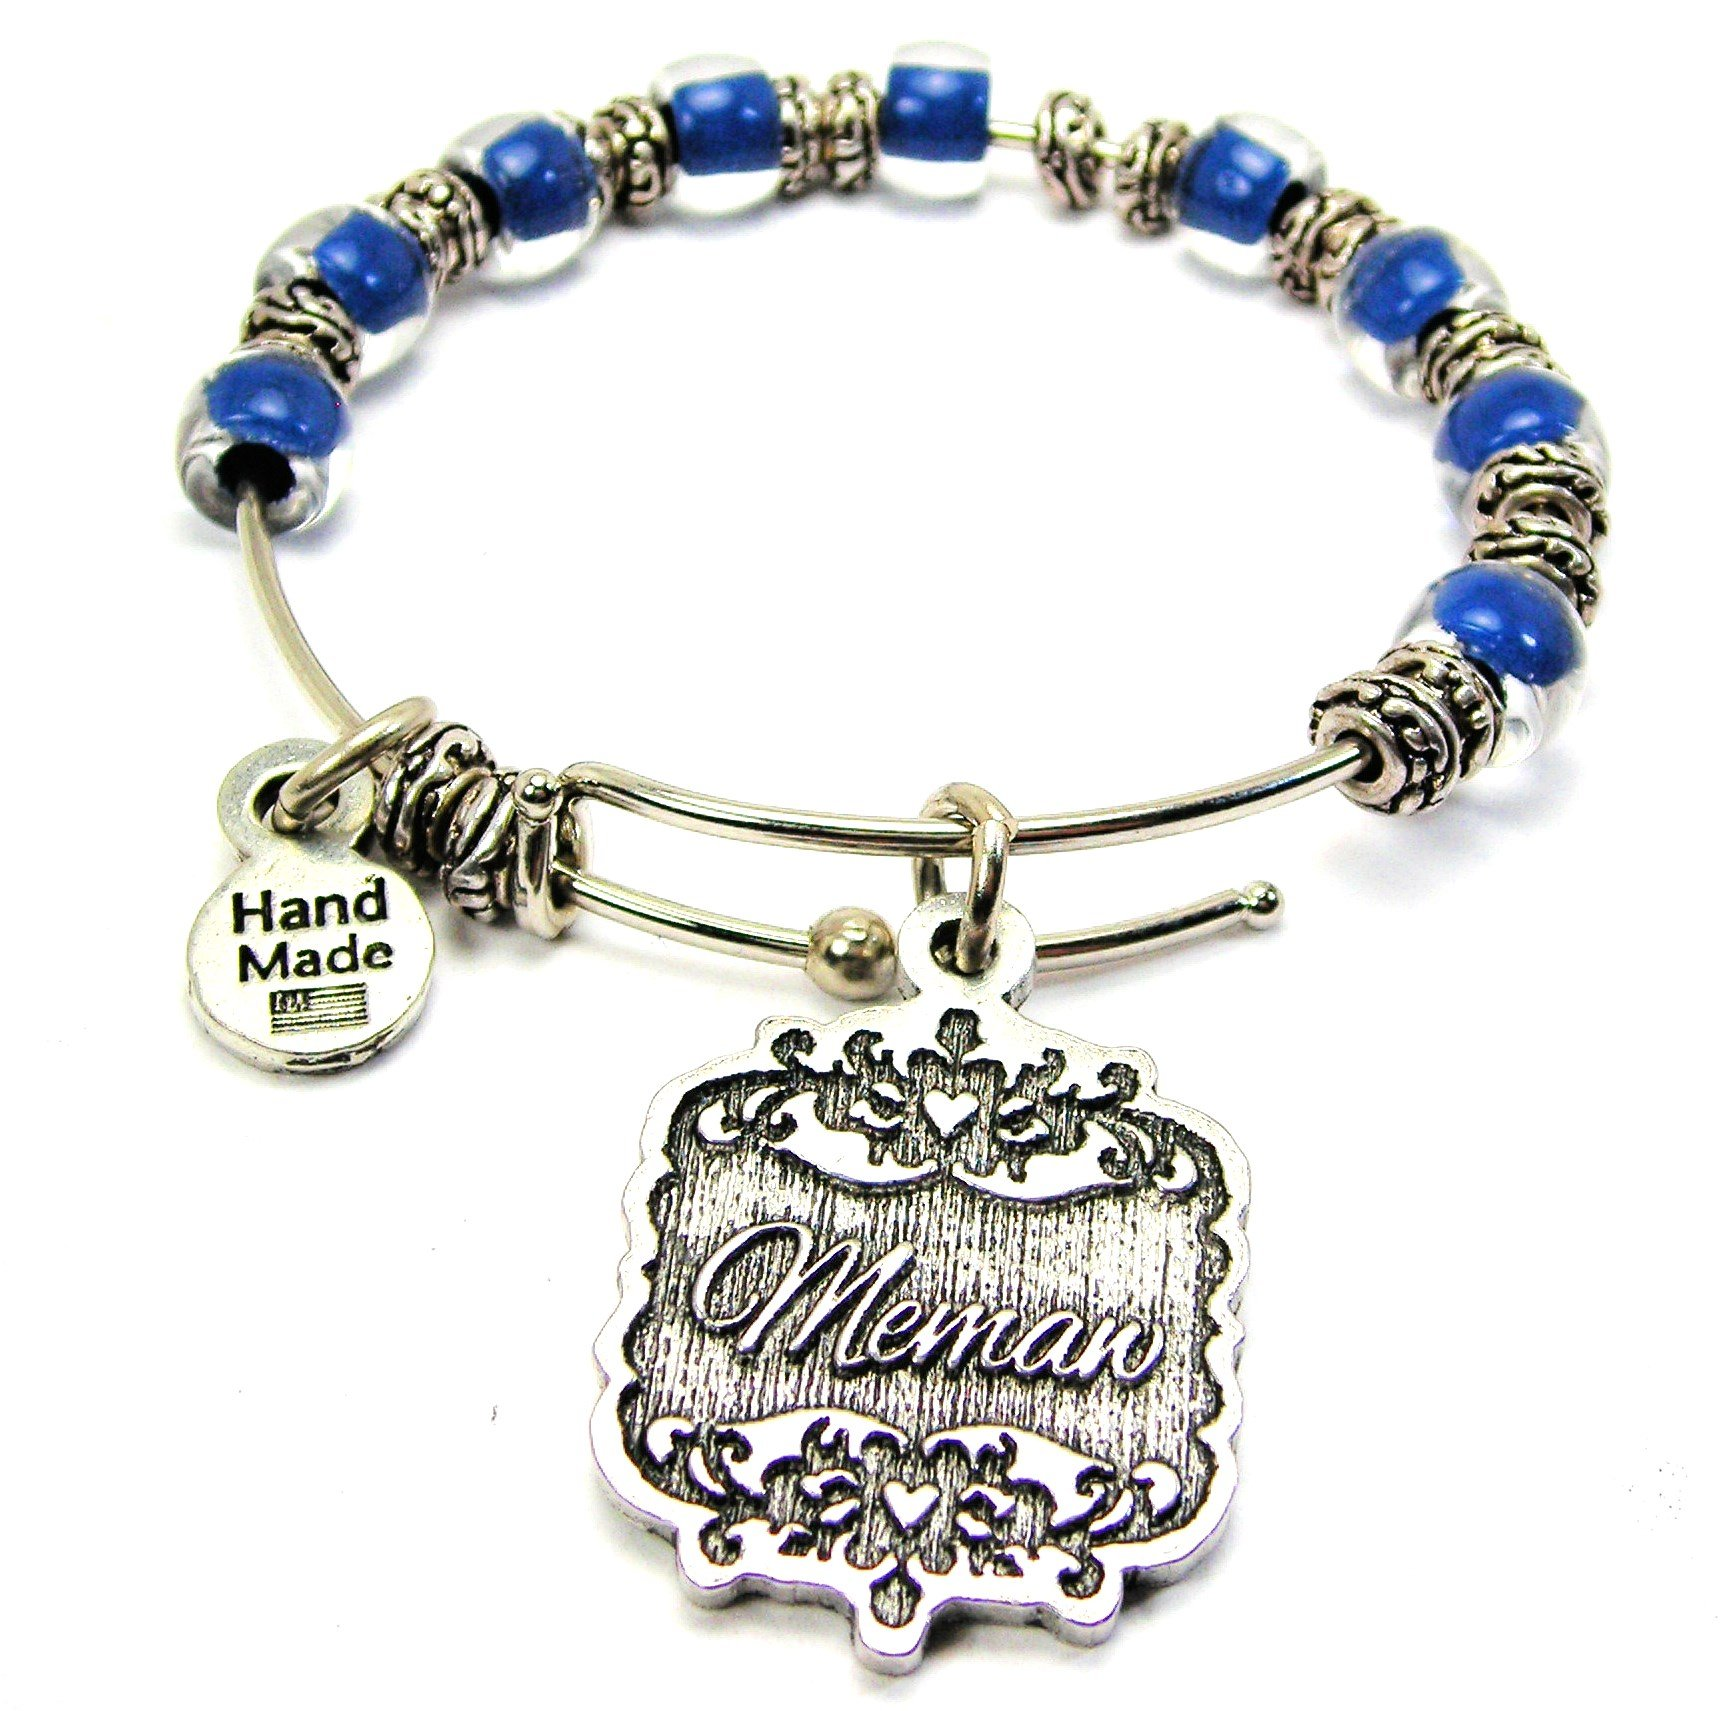 Chubby Chico Charms Memaw Victorian Scroll Beaded 9MM Bangle Bracelet in Sapphire Blue